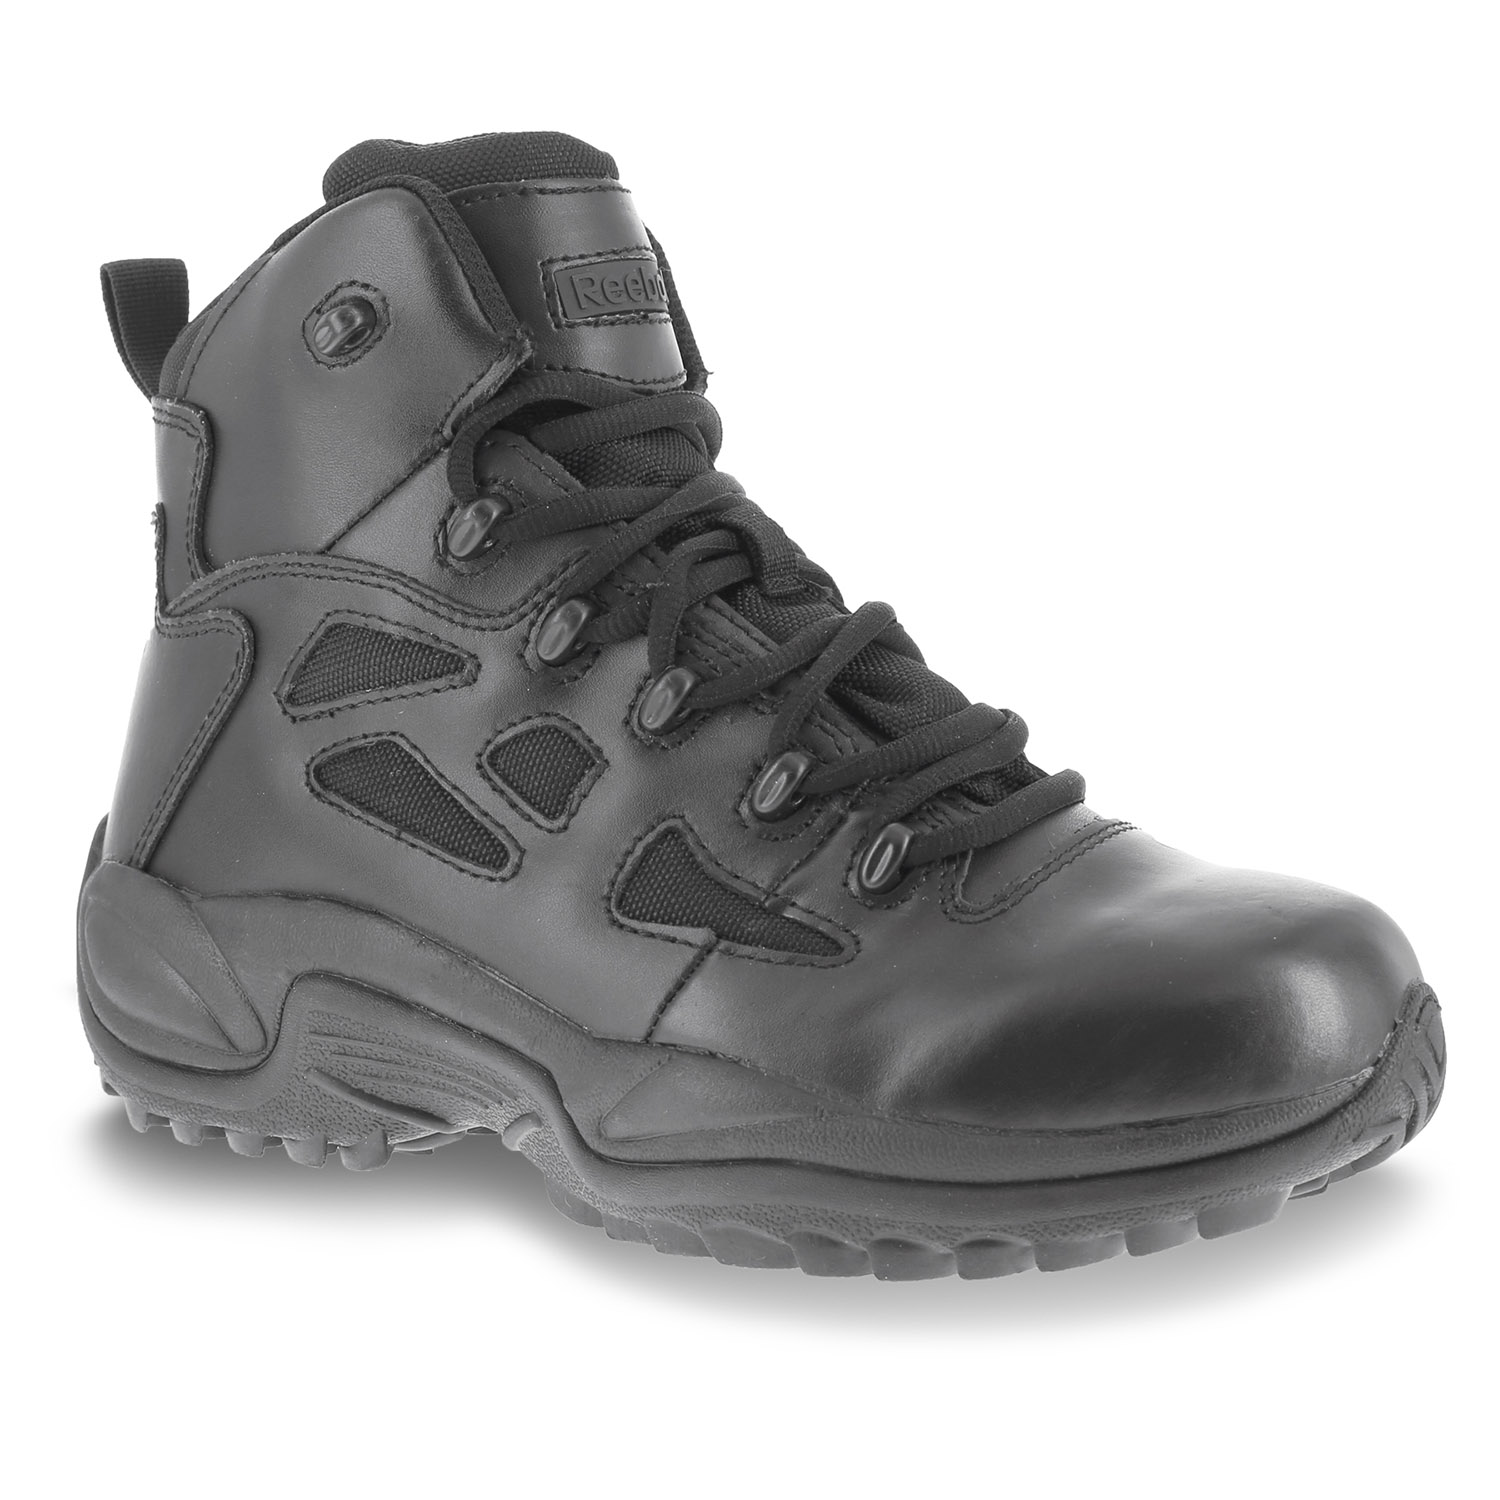 "Reebok 6"" Rapid Response Waterproof Side Zip Tactical B"